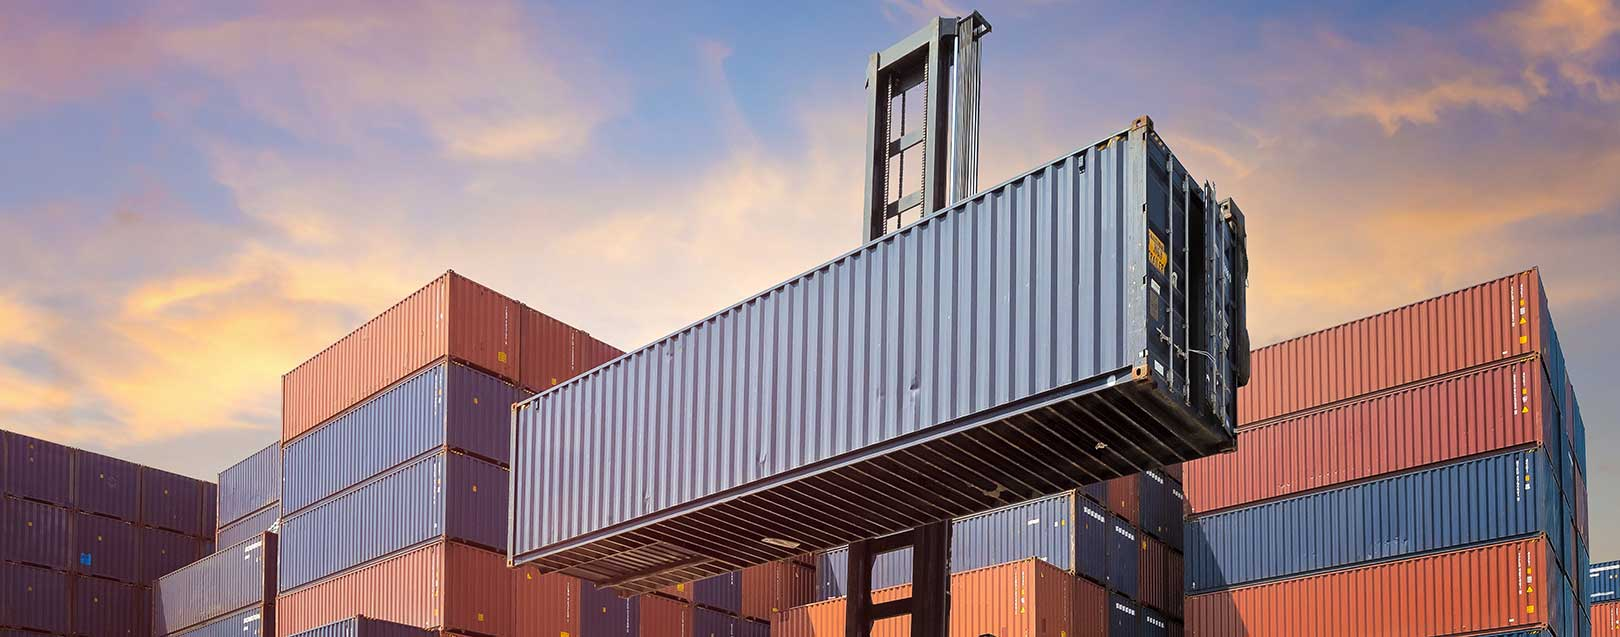 DGFT assures transparency, good governance to lift exports